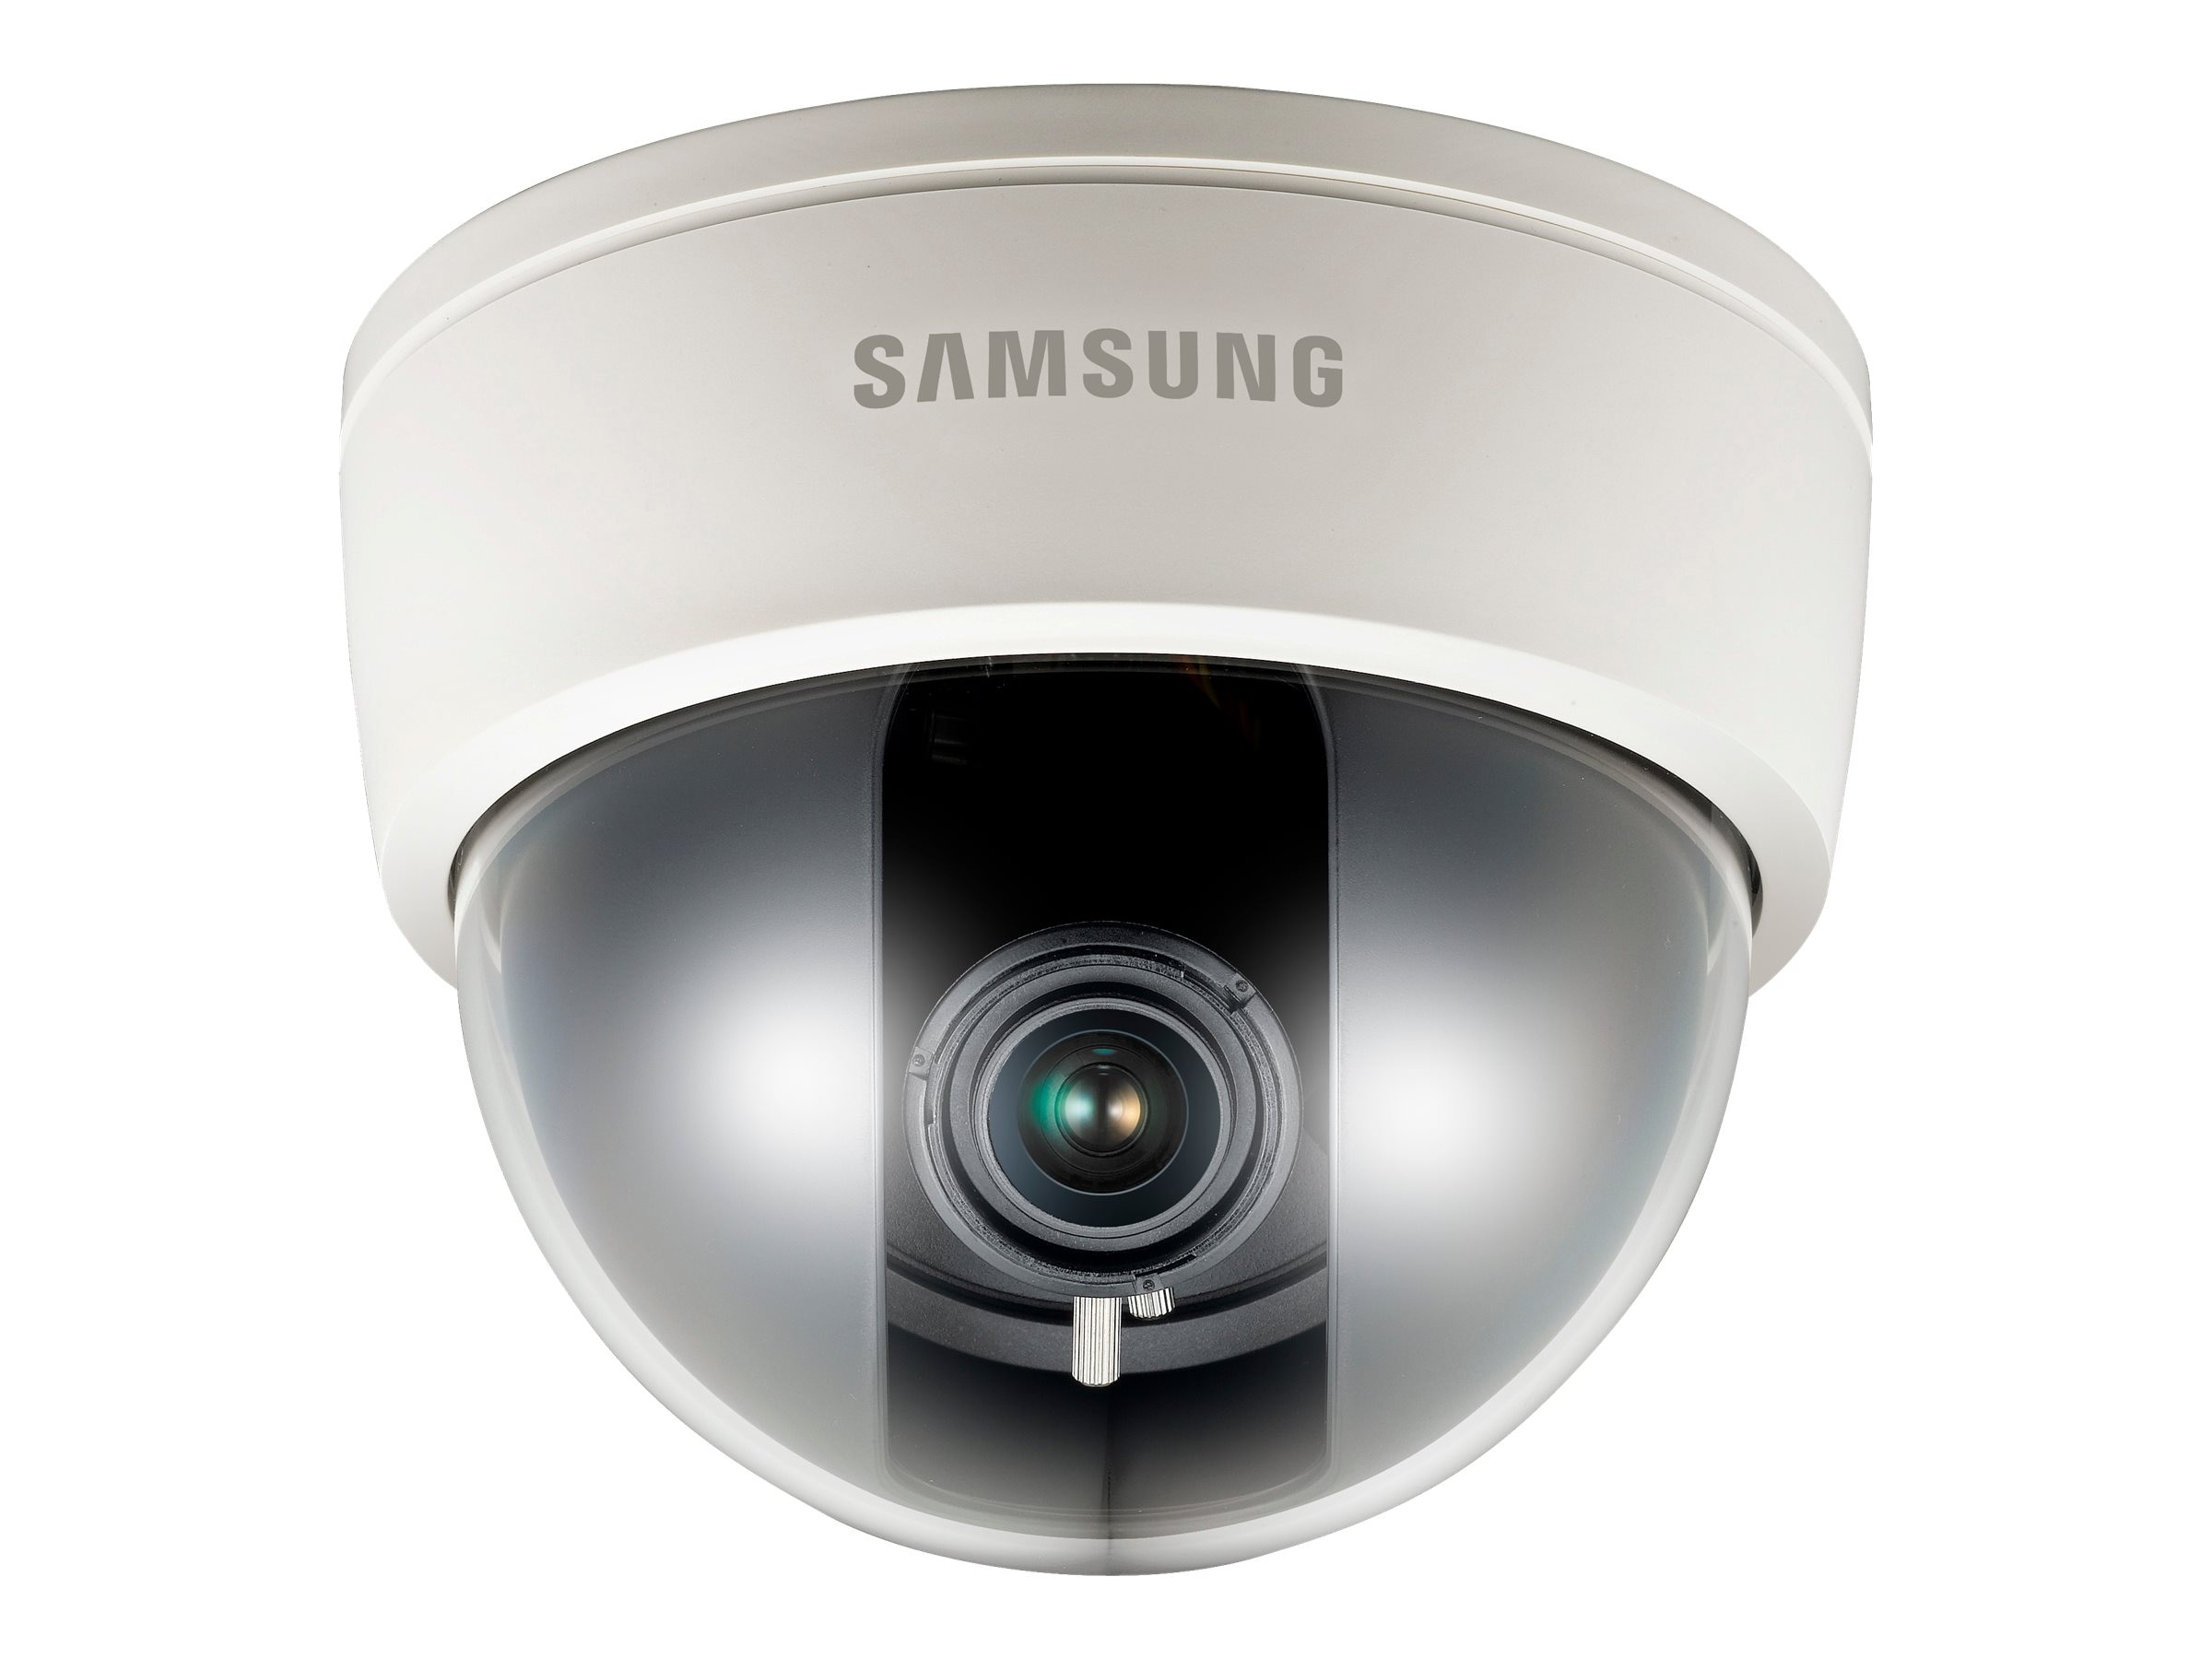 Samsung High Resolution Day & Night Varifocal Dome Camera, SCD-2080, 17783179, Cameras - Security